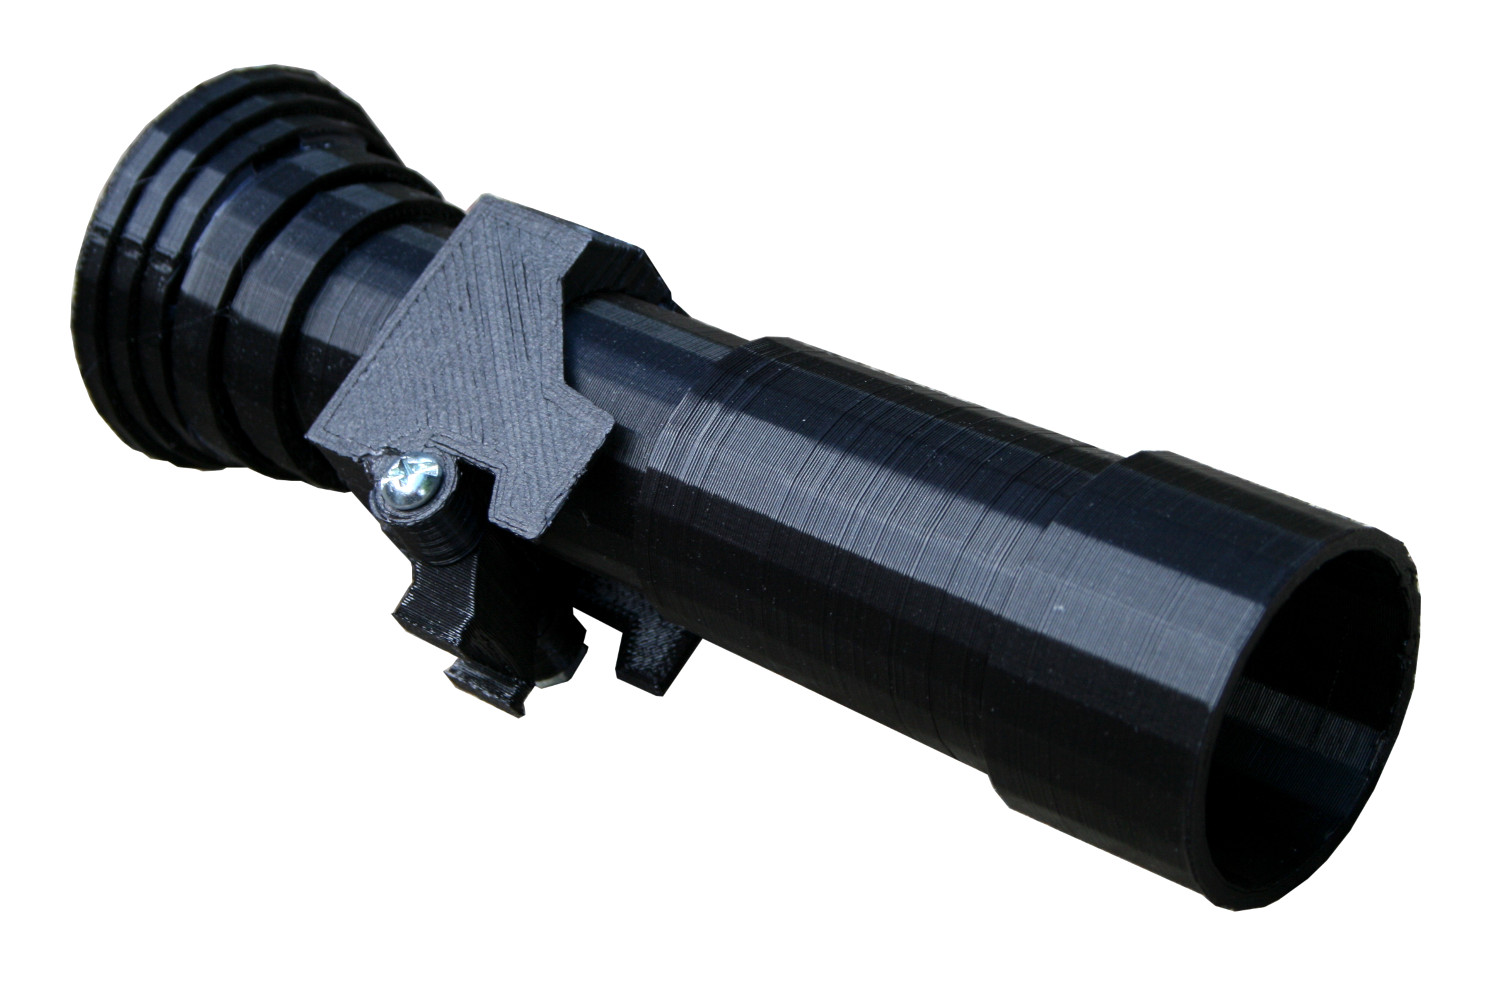 1x Paintball Scope - Universal 3D printed paintball mods.